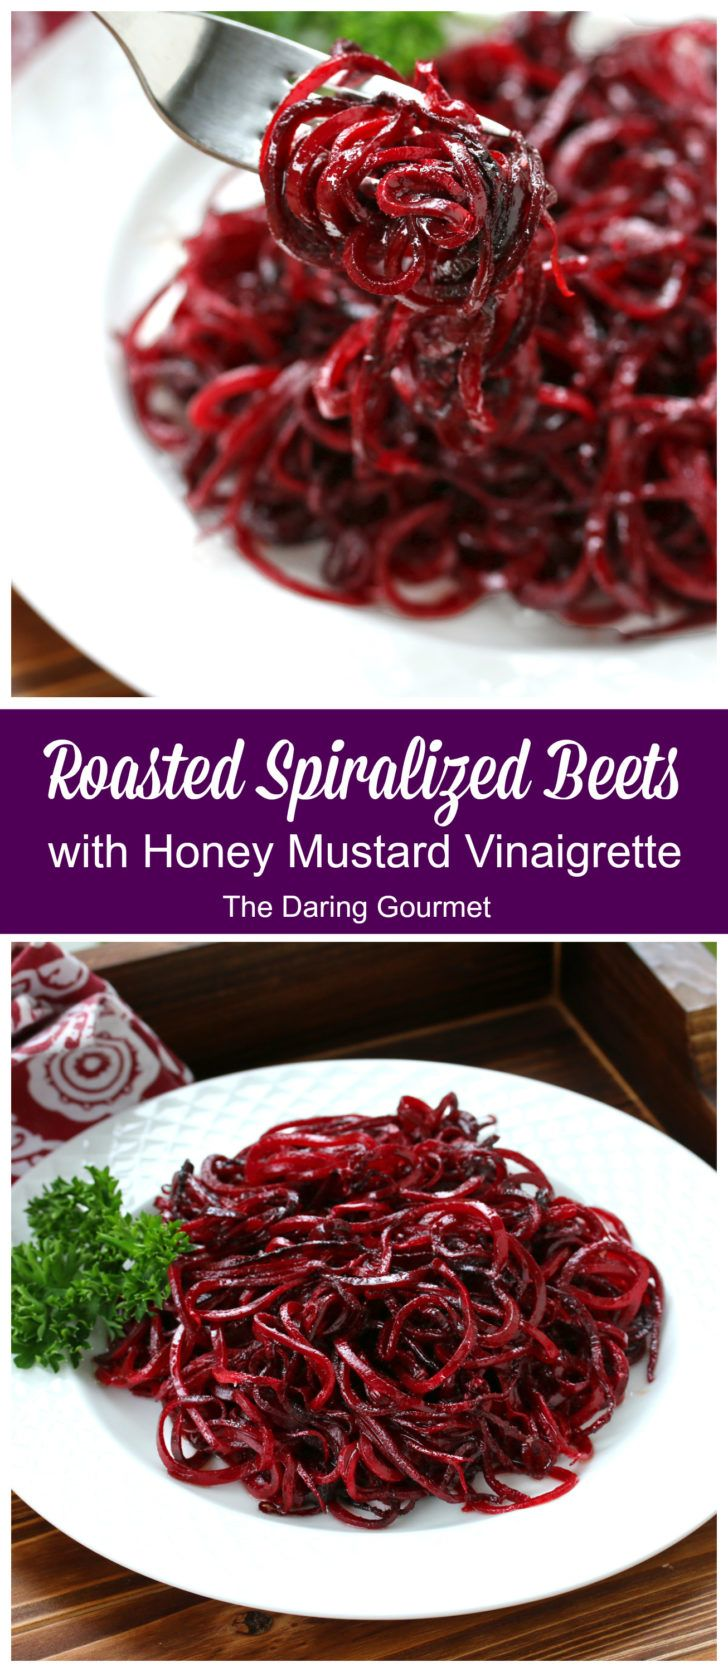 Roasted Spiralized Beets with Honey Mustard Vinaigrette